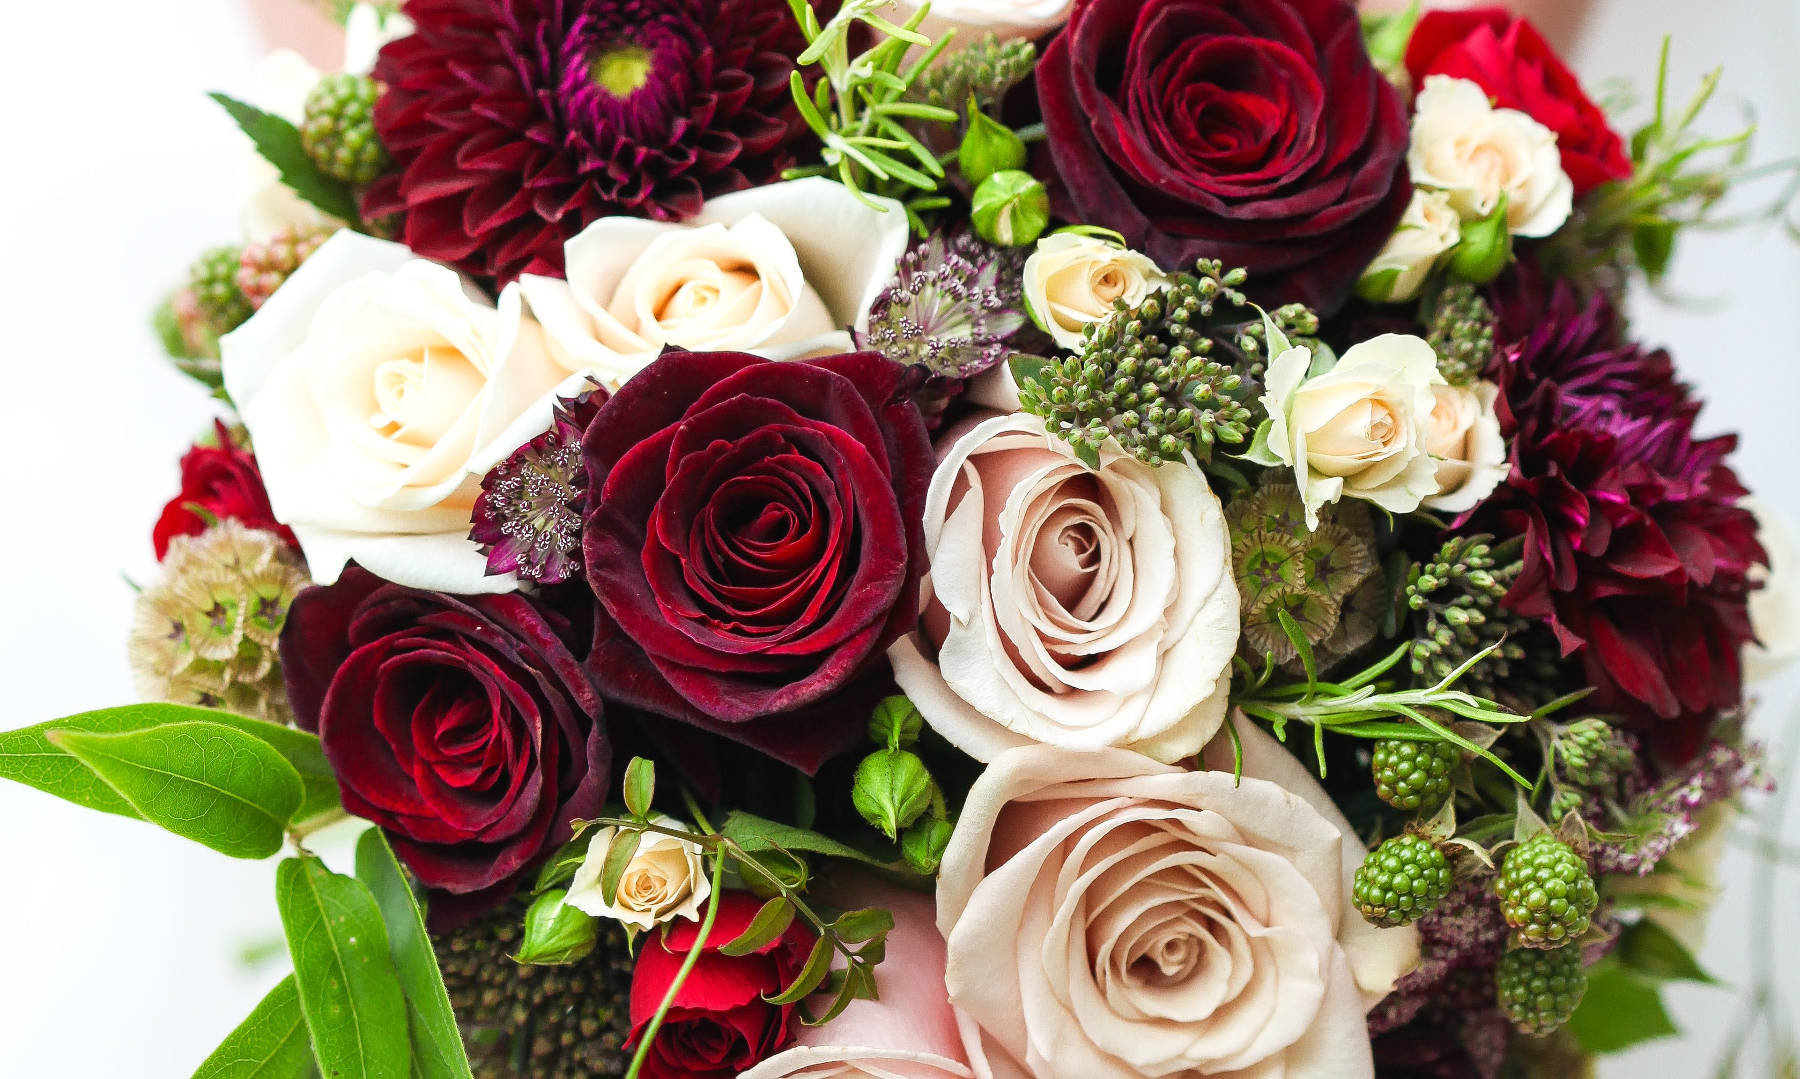 Wedding Flowers And Arrangements In West Berkshire By